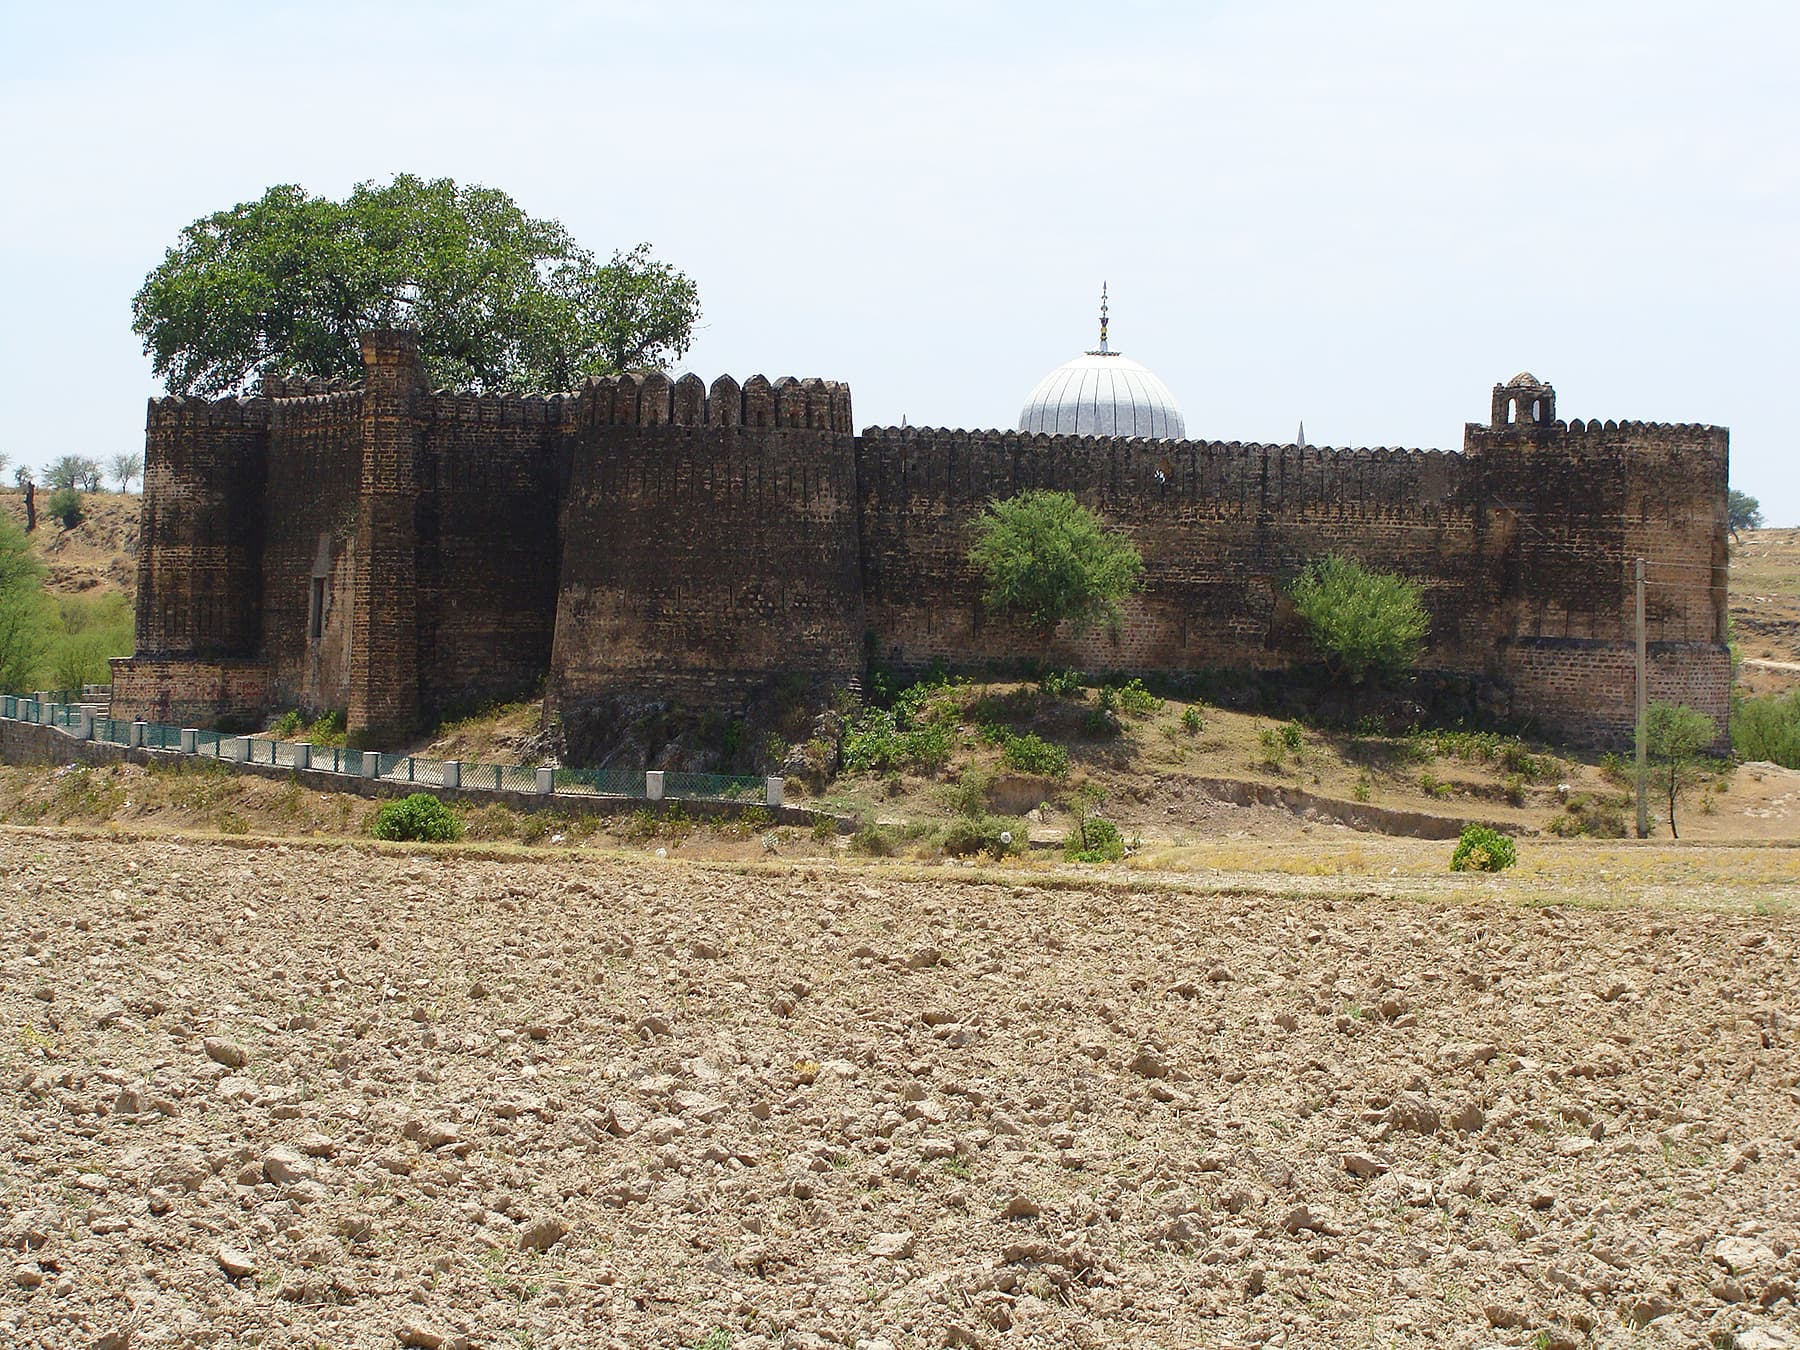 The dome of the shrine is visible over the fort walls.